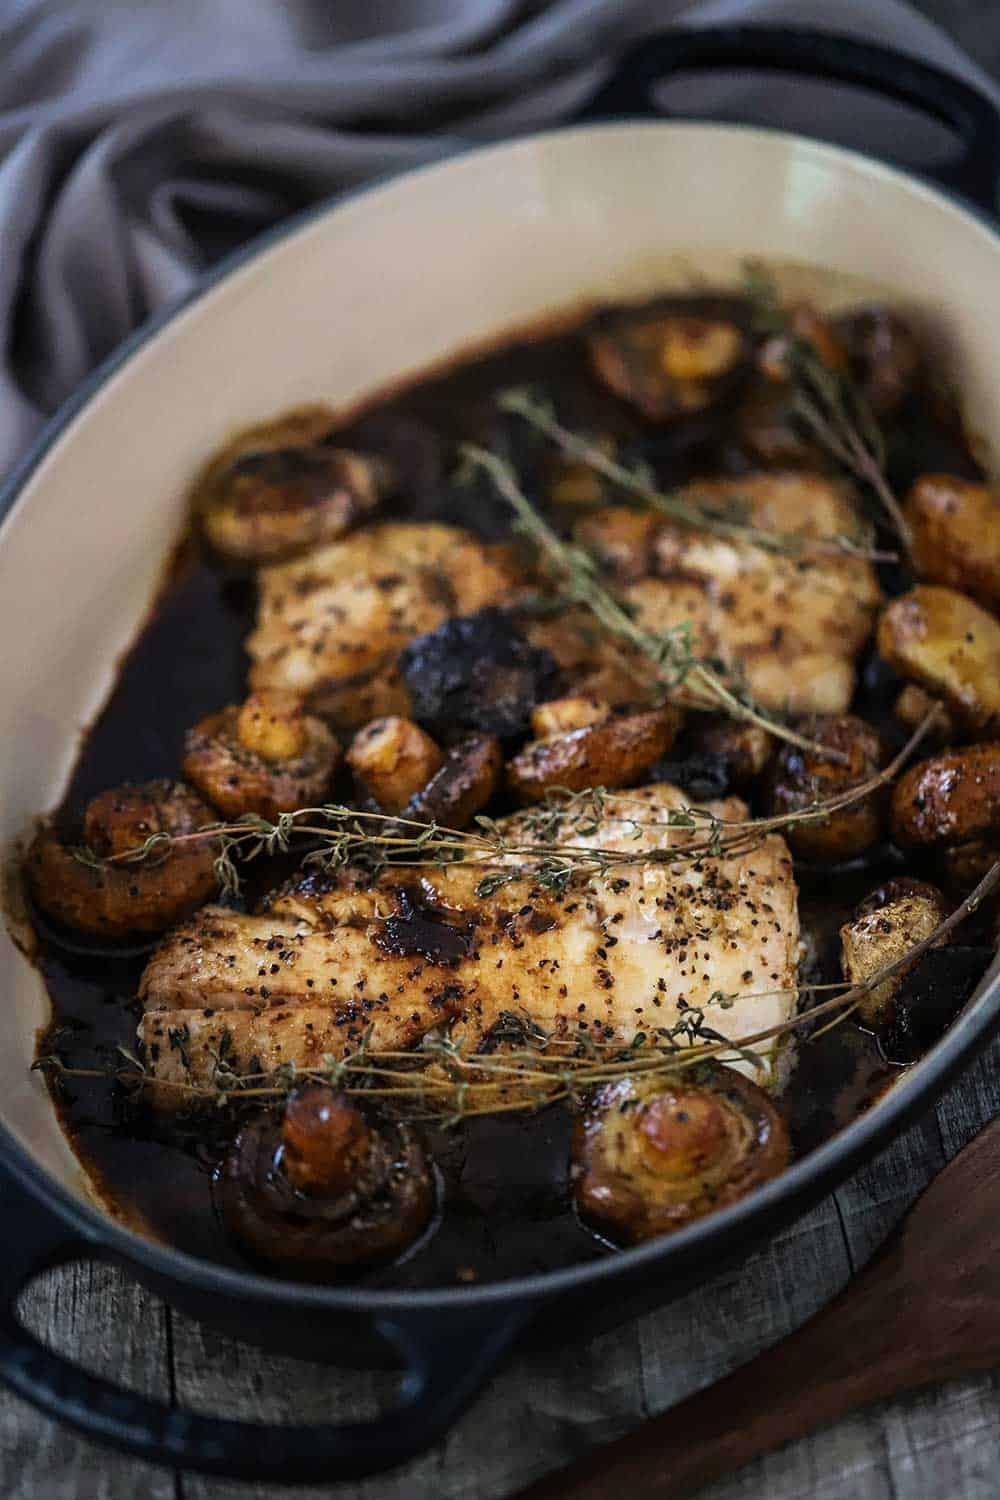 A baking dish filled with seared haddock with mushroom agrodolce sauce and sprigs of thyme on top.